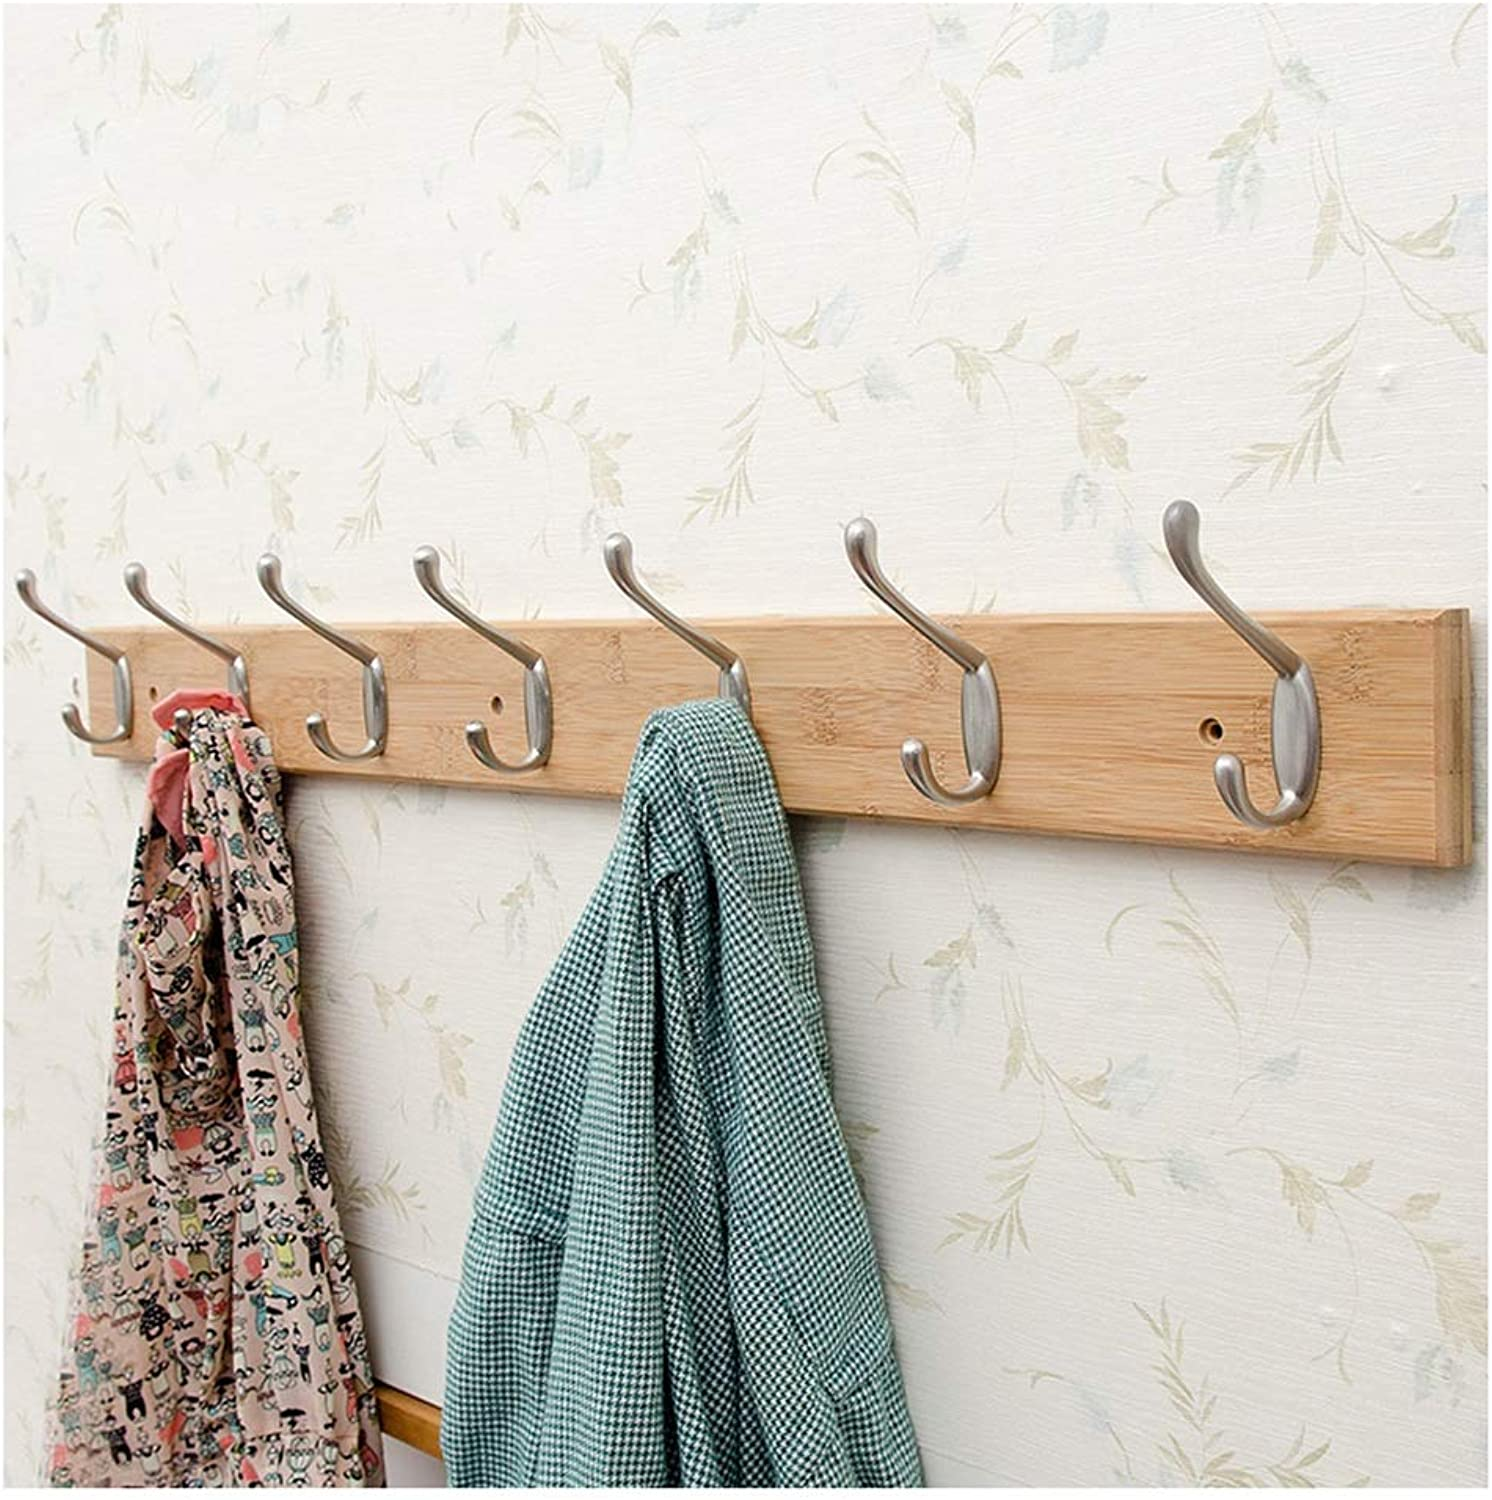 JIANFEI Wall Mounted Coat Rack Hanger Metal Hook Up Solid Wood Frame Stable,2 Colours 5 Size (color   Brass, Size   85x7.5x1.5cm)